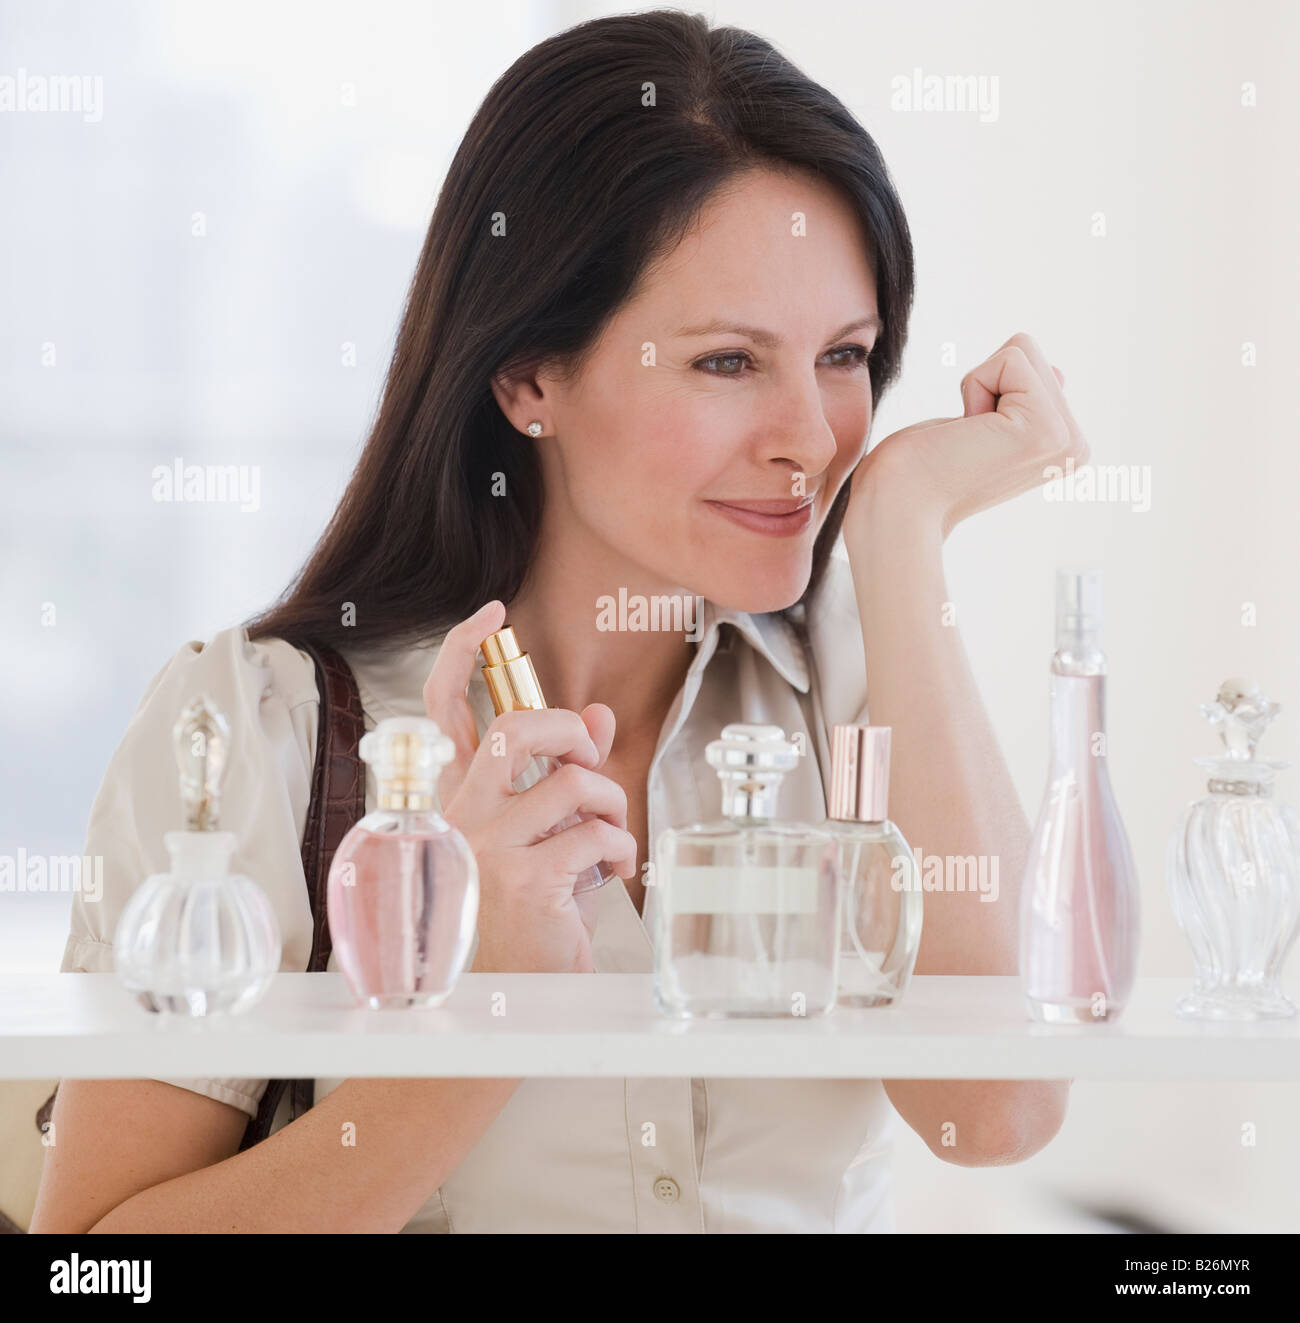 Woman sampling perfume - Stock Image